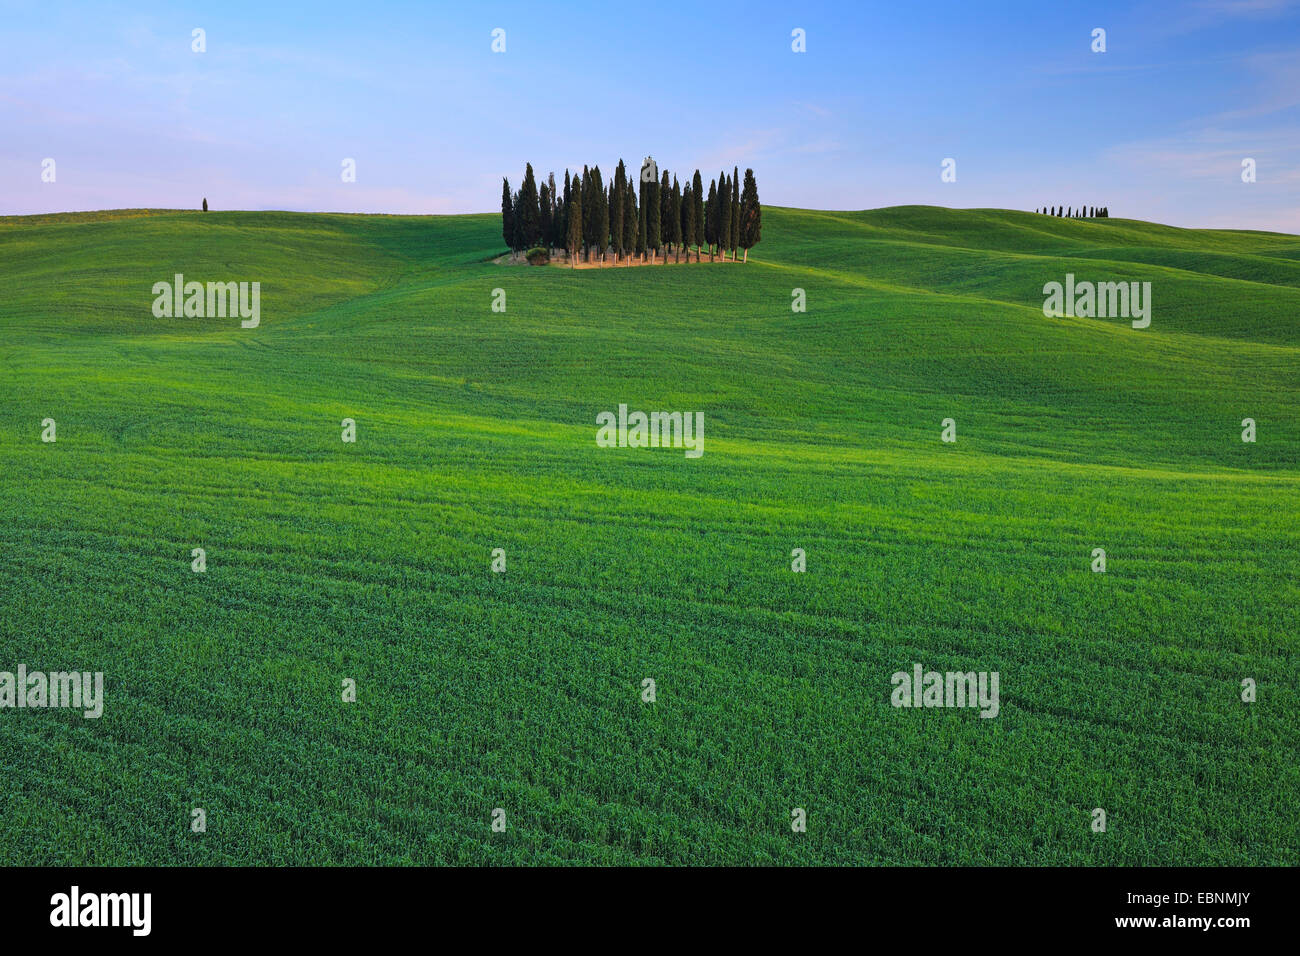 Italian cypress (Cupressus sempervirens), grove in a wide field landscape, Italy, Tuscany, Val d' Orcia, San - Stock Image